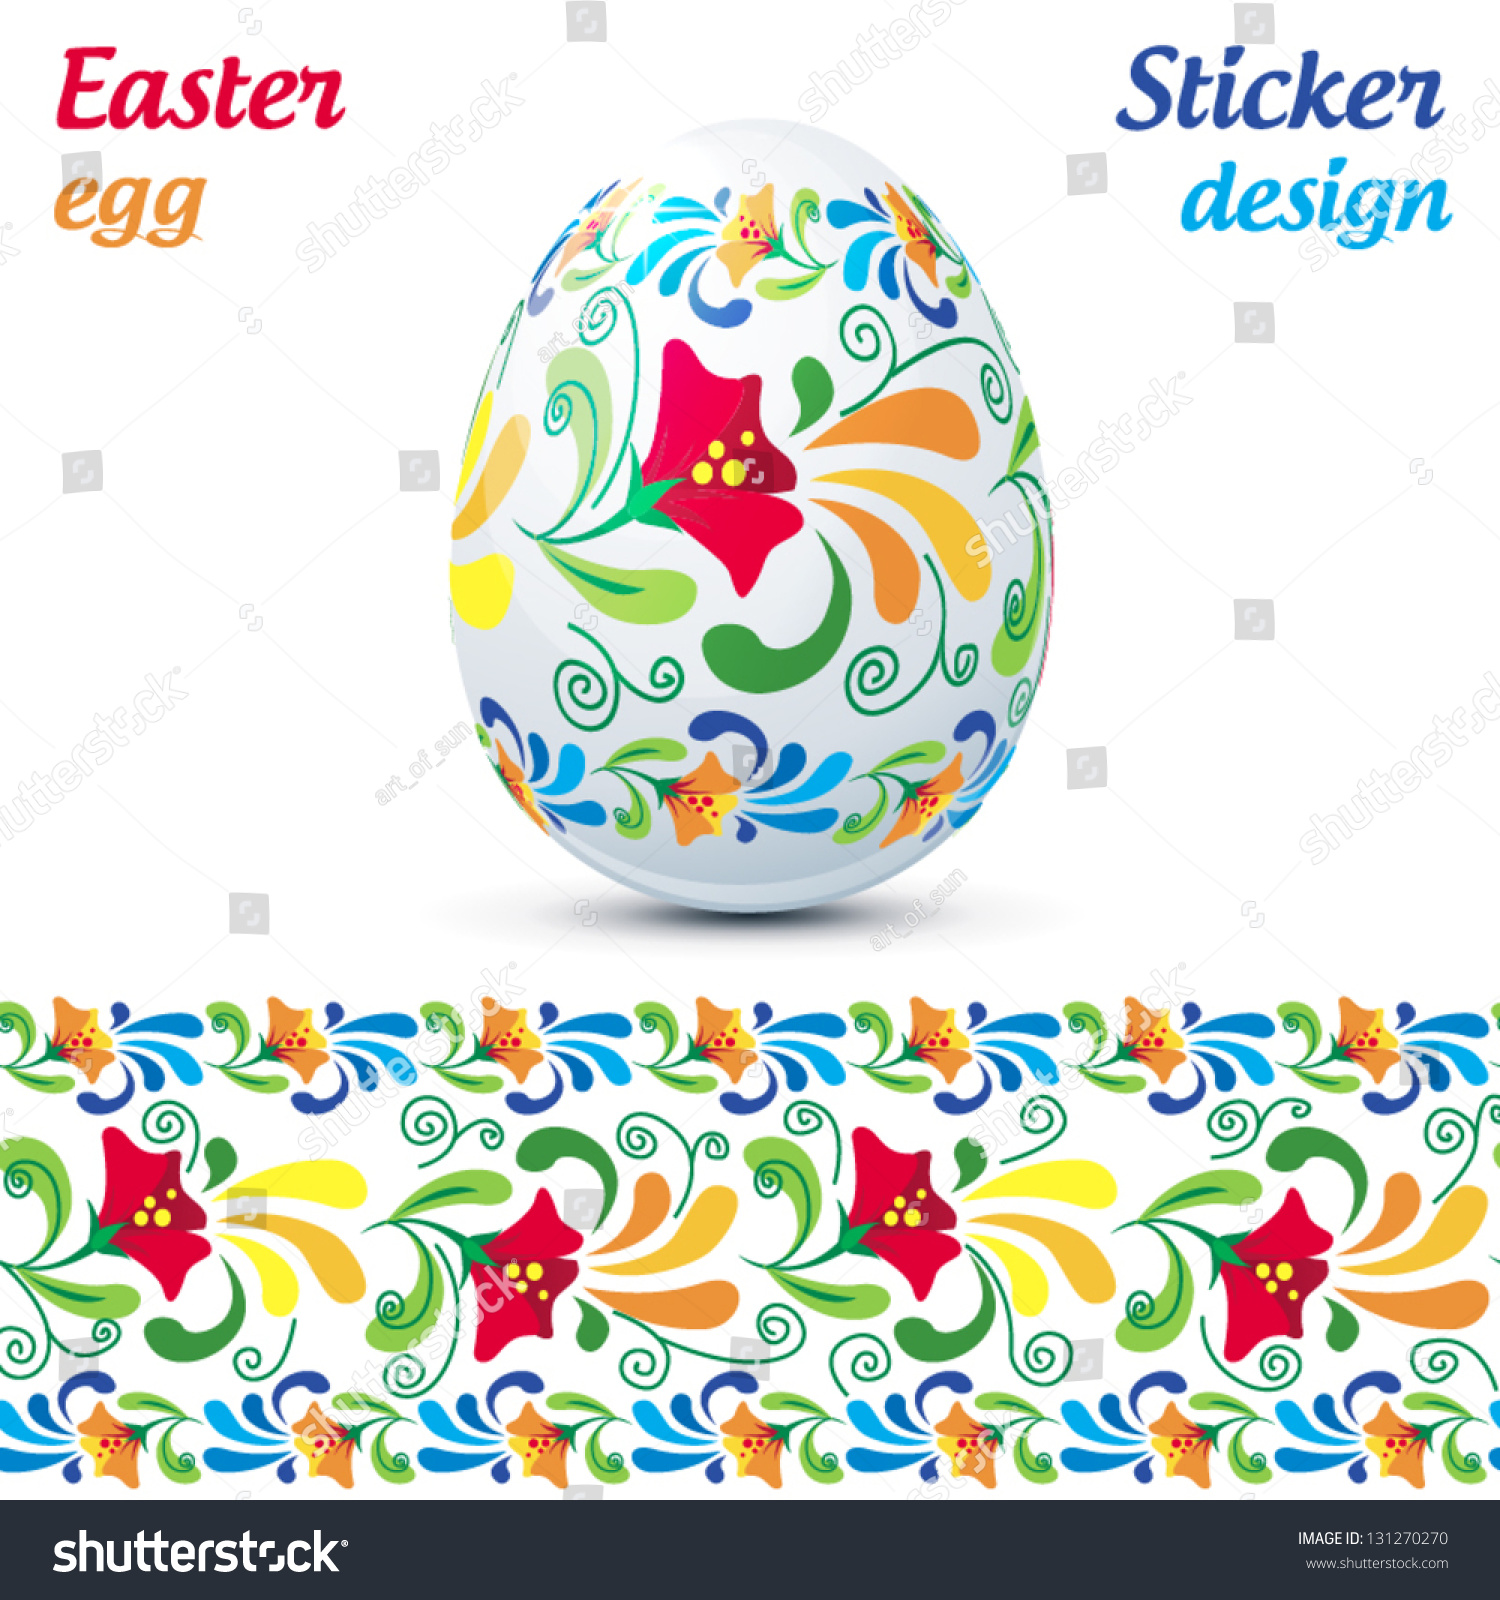 Traditional Ornate Easter Eggs Sticker Design Stock Vector (Royalty